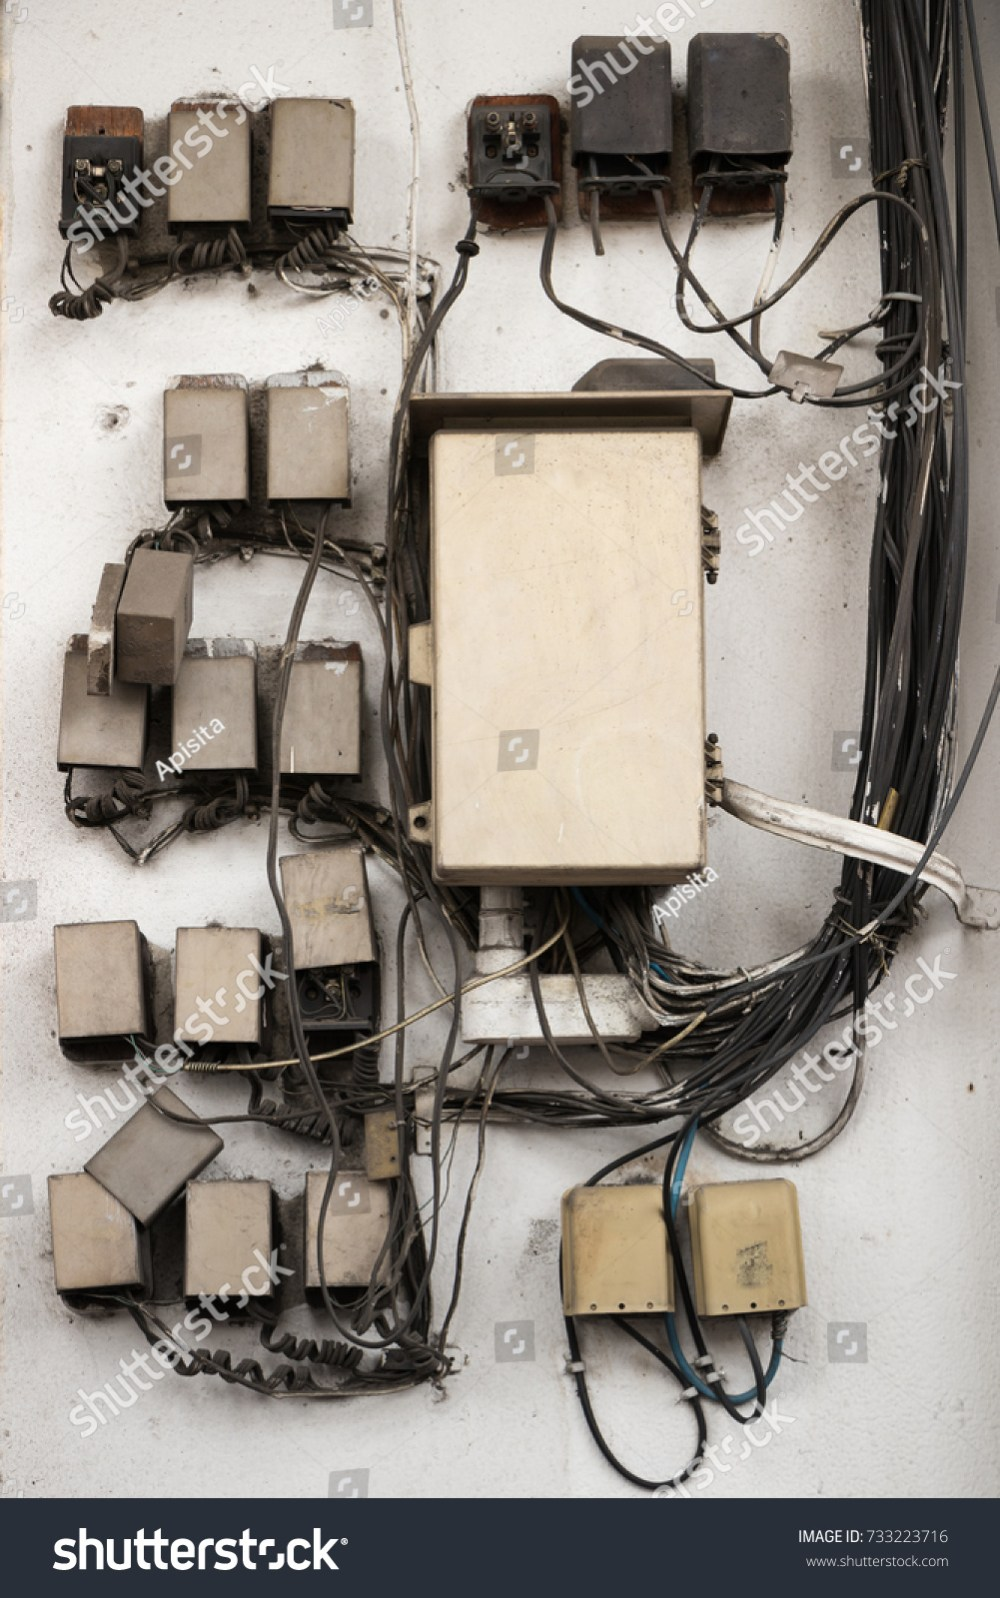 medium resolution of old dusty telephone cable electric wires and junction box on wall